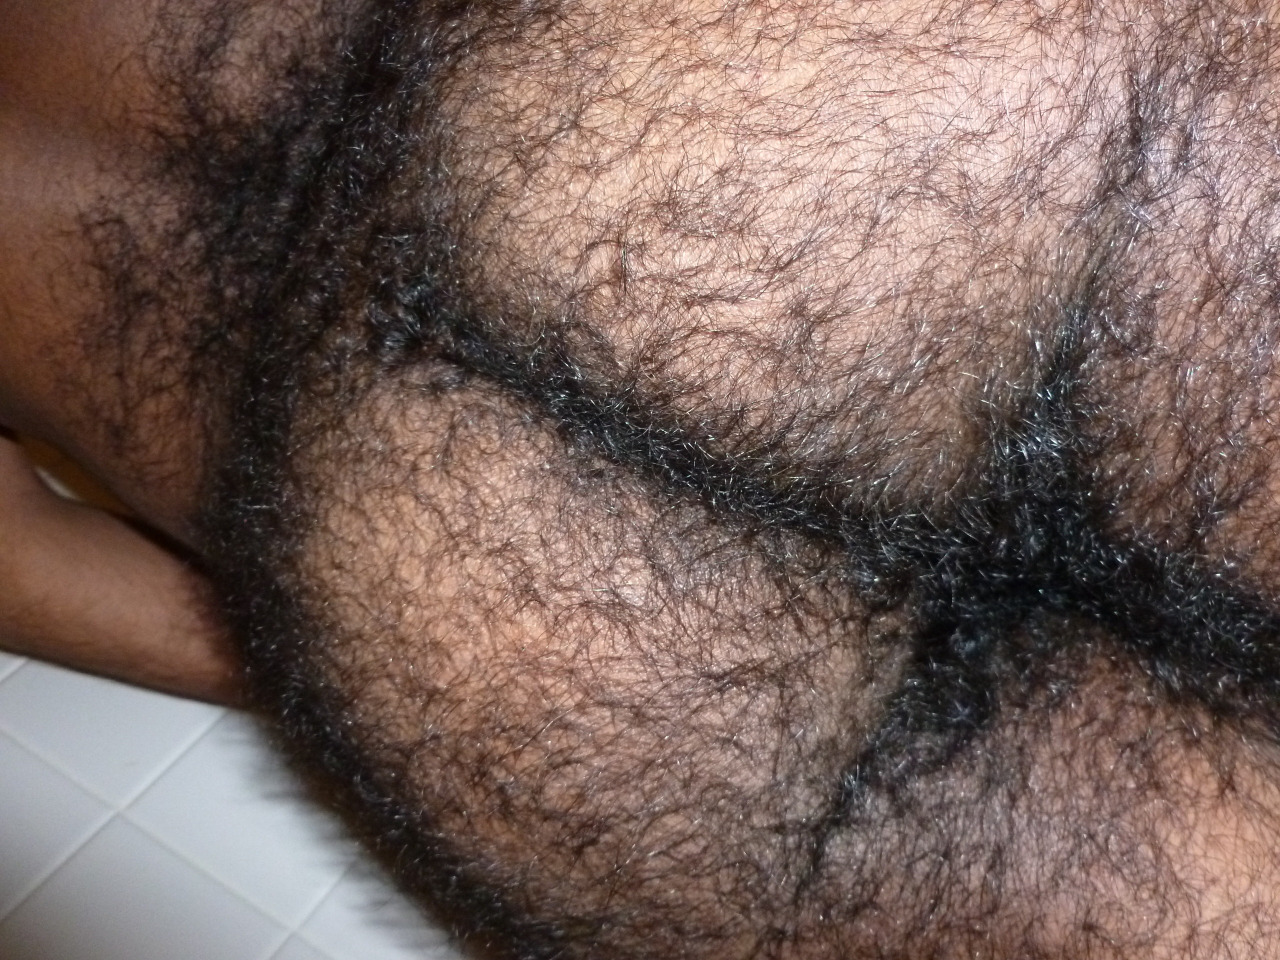 from Dorian gay hairy ass crack